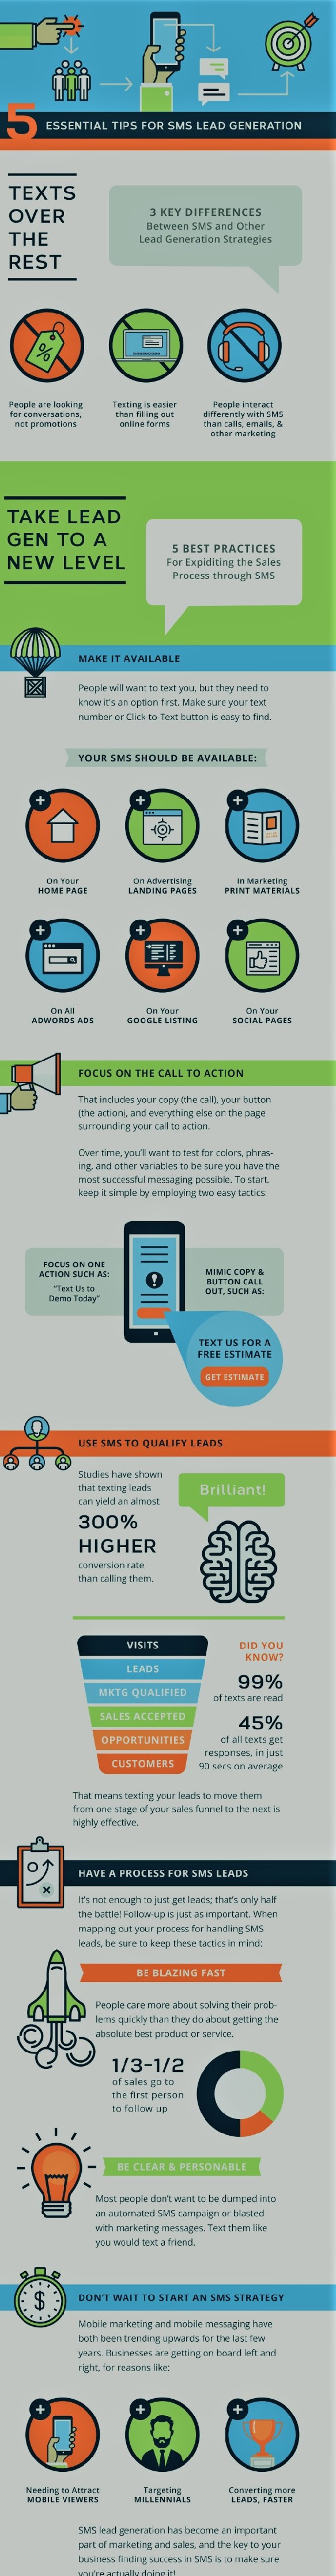 driving quality leads via sms marketing infographic